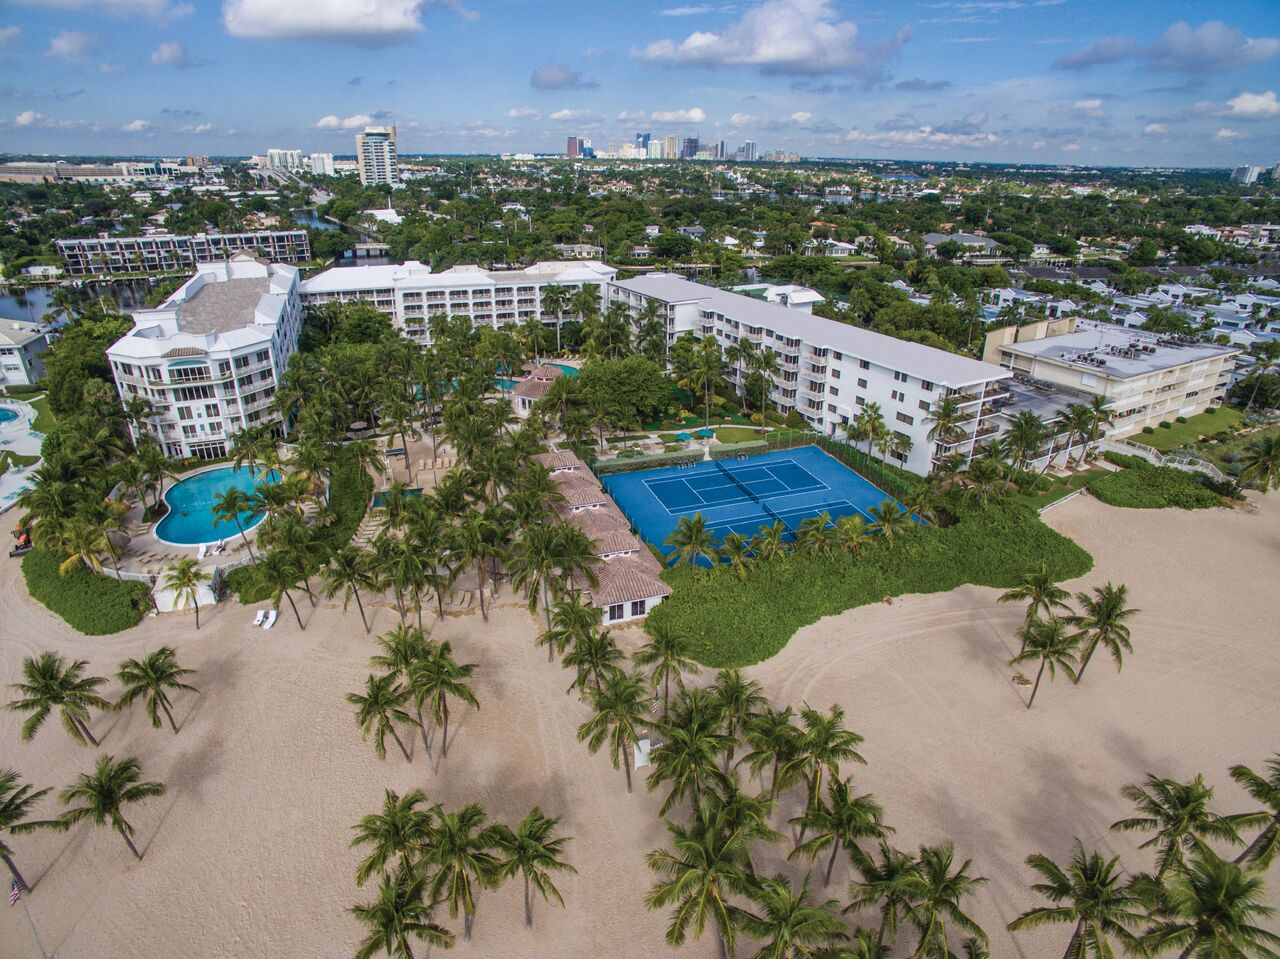 lago mar resort from above aerial